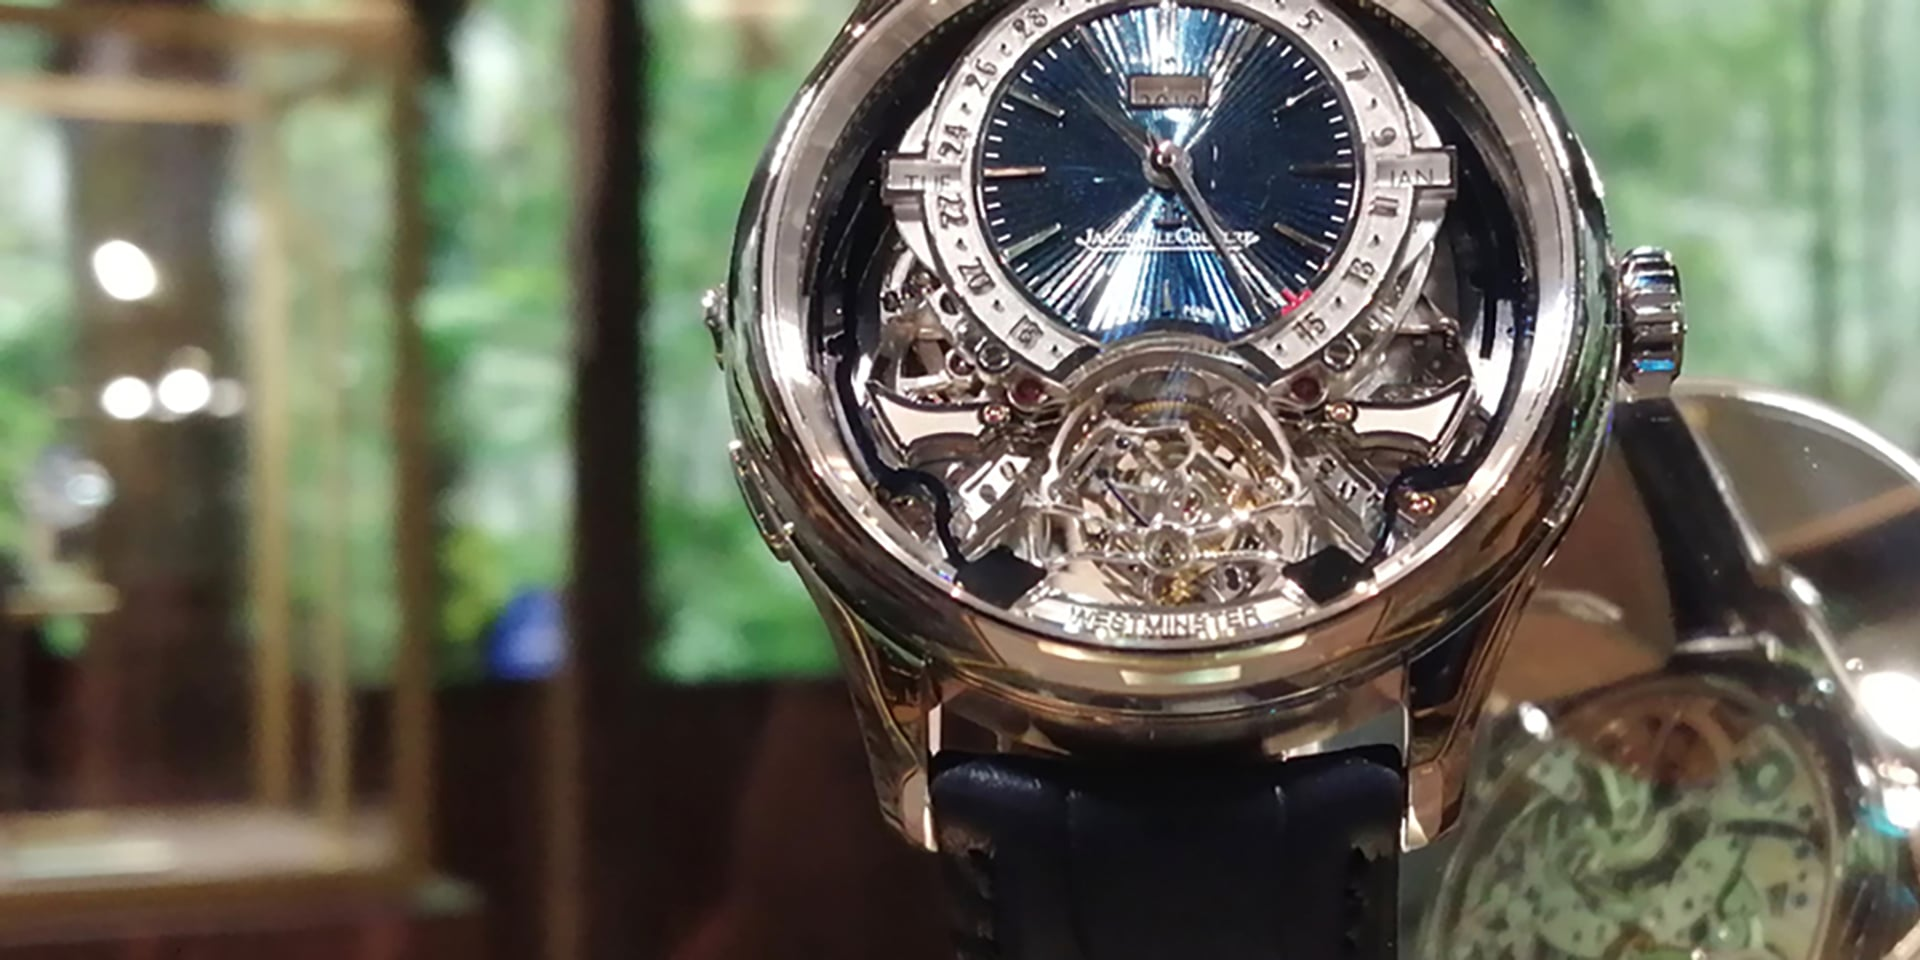 Jaeger-LeCoultre SIHH 2019 - Joux Valley